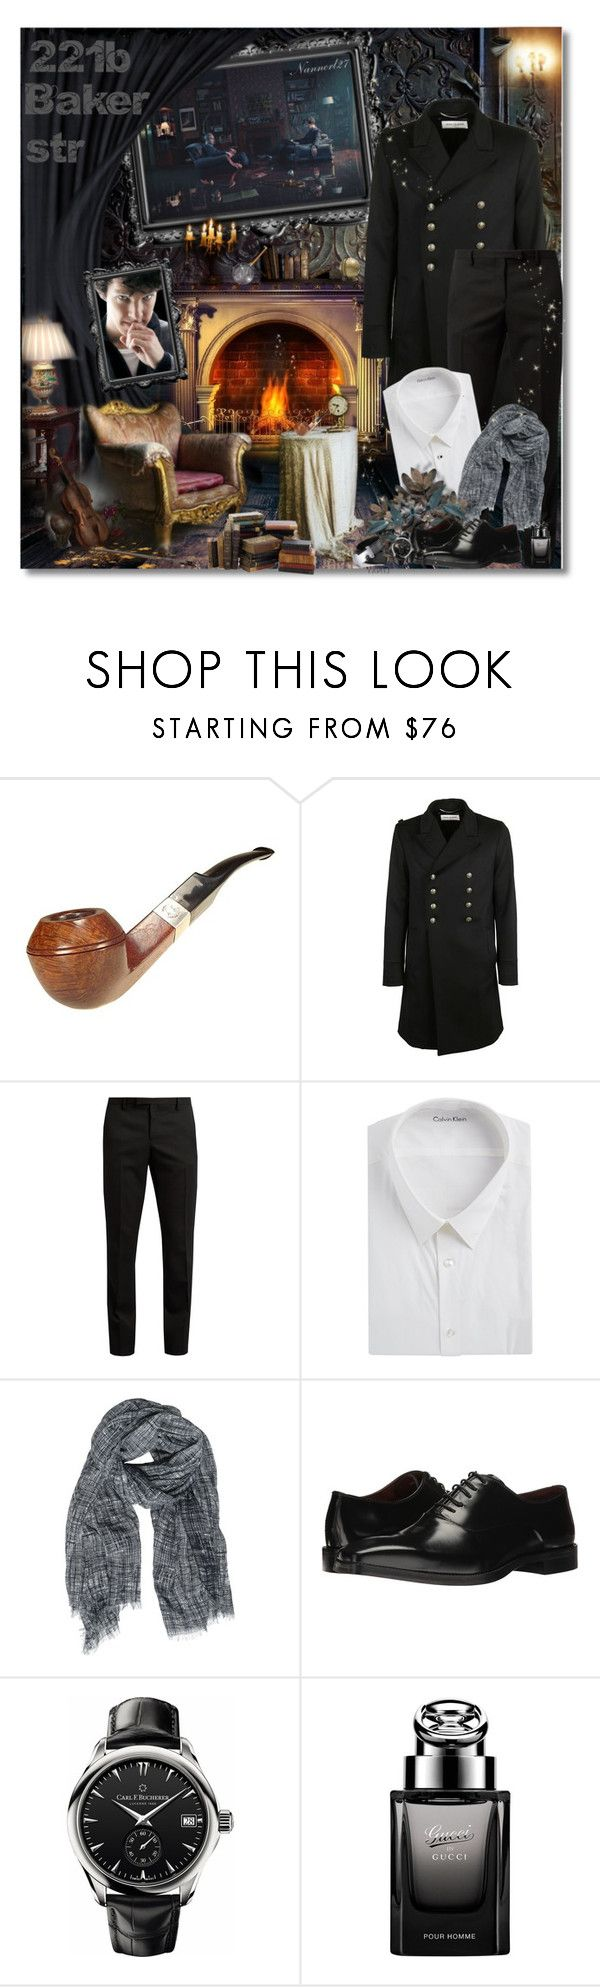 """""""221b Baker str"""" by nannerl27forever ❤ liked on Polyvore featuring Episode, Yves Saint Laurent, Calvin Klein, Destin Surl, Massimo Matteo, Carl F. Bucherer, Gucci, men's fashion and menswear"""